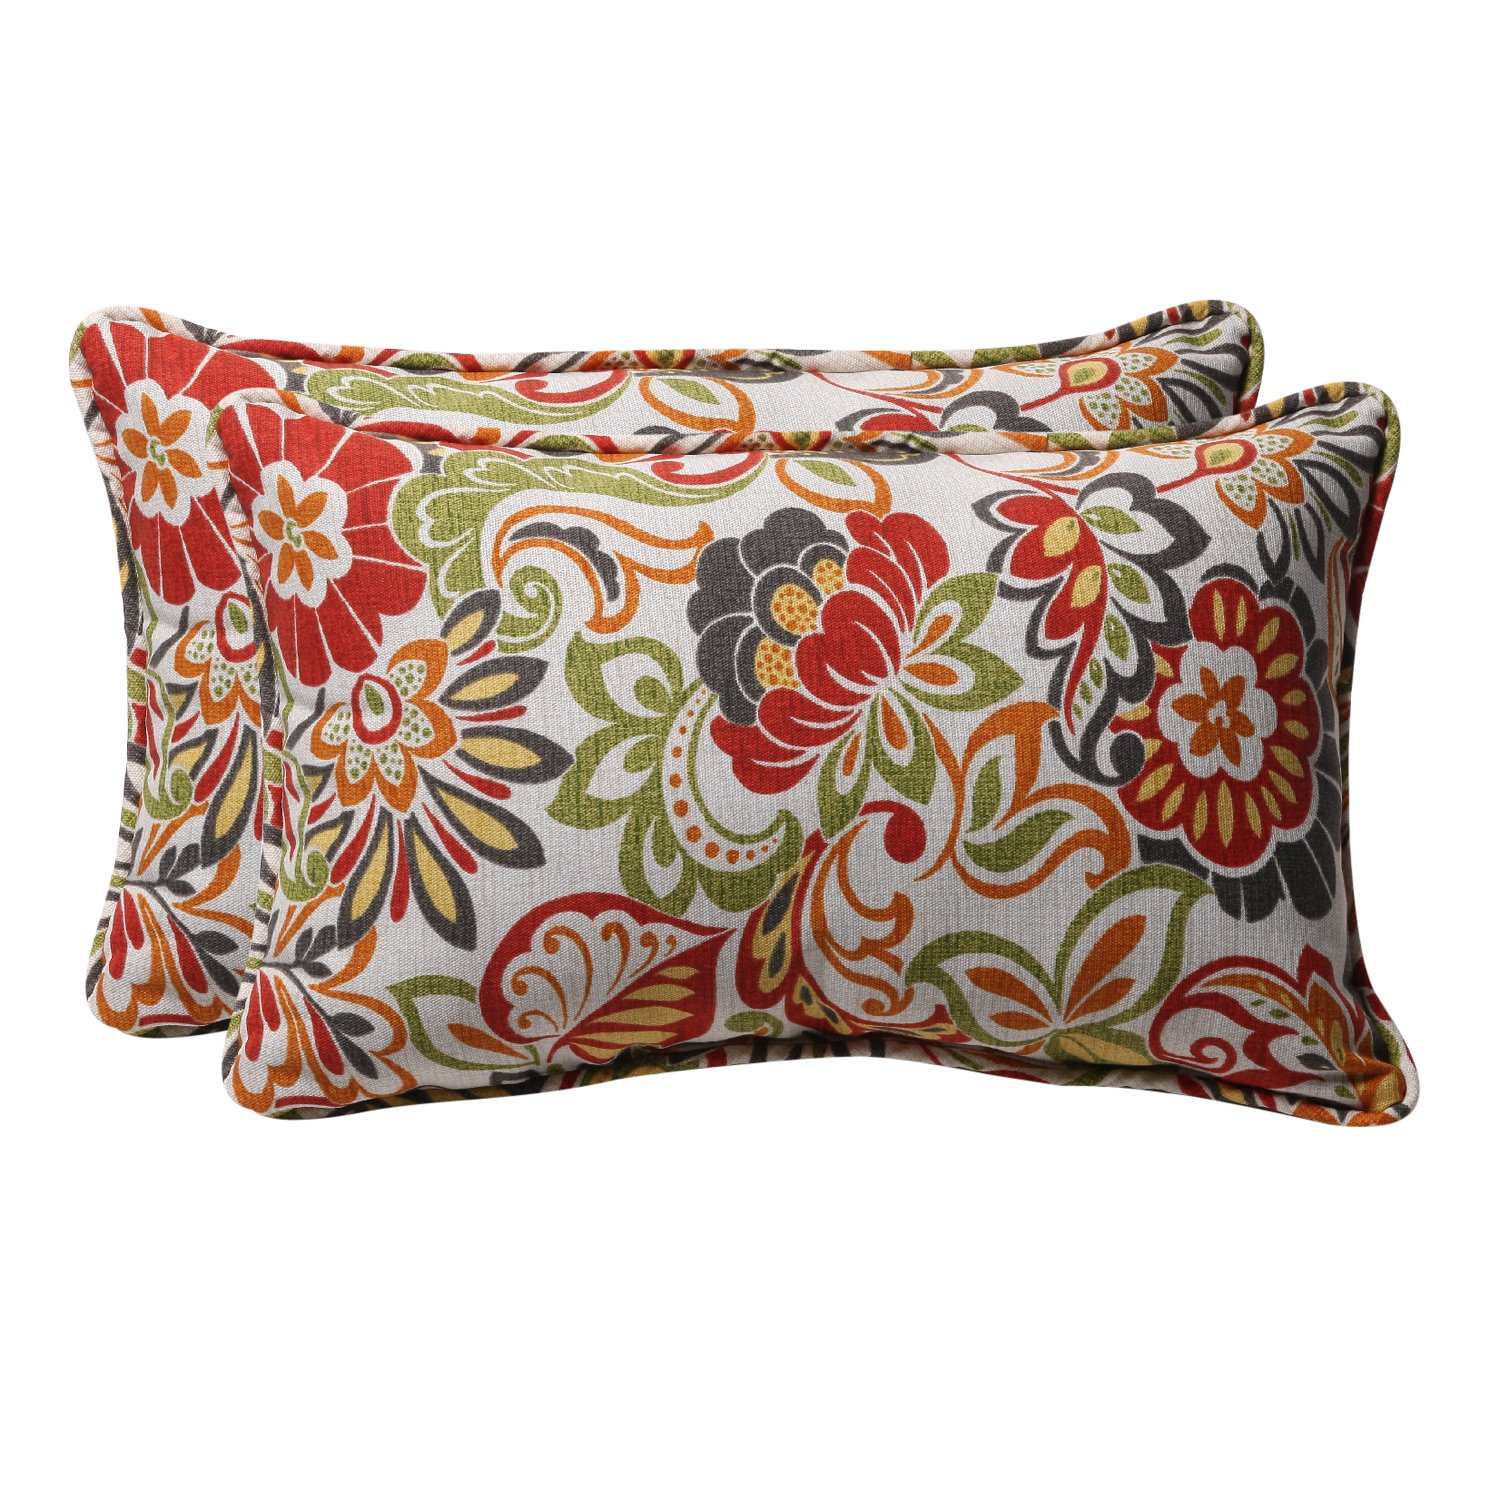 Throw Pillows For Sofa Images : Designer Sofa Pillows - Sofa Design